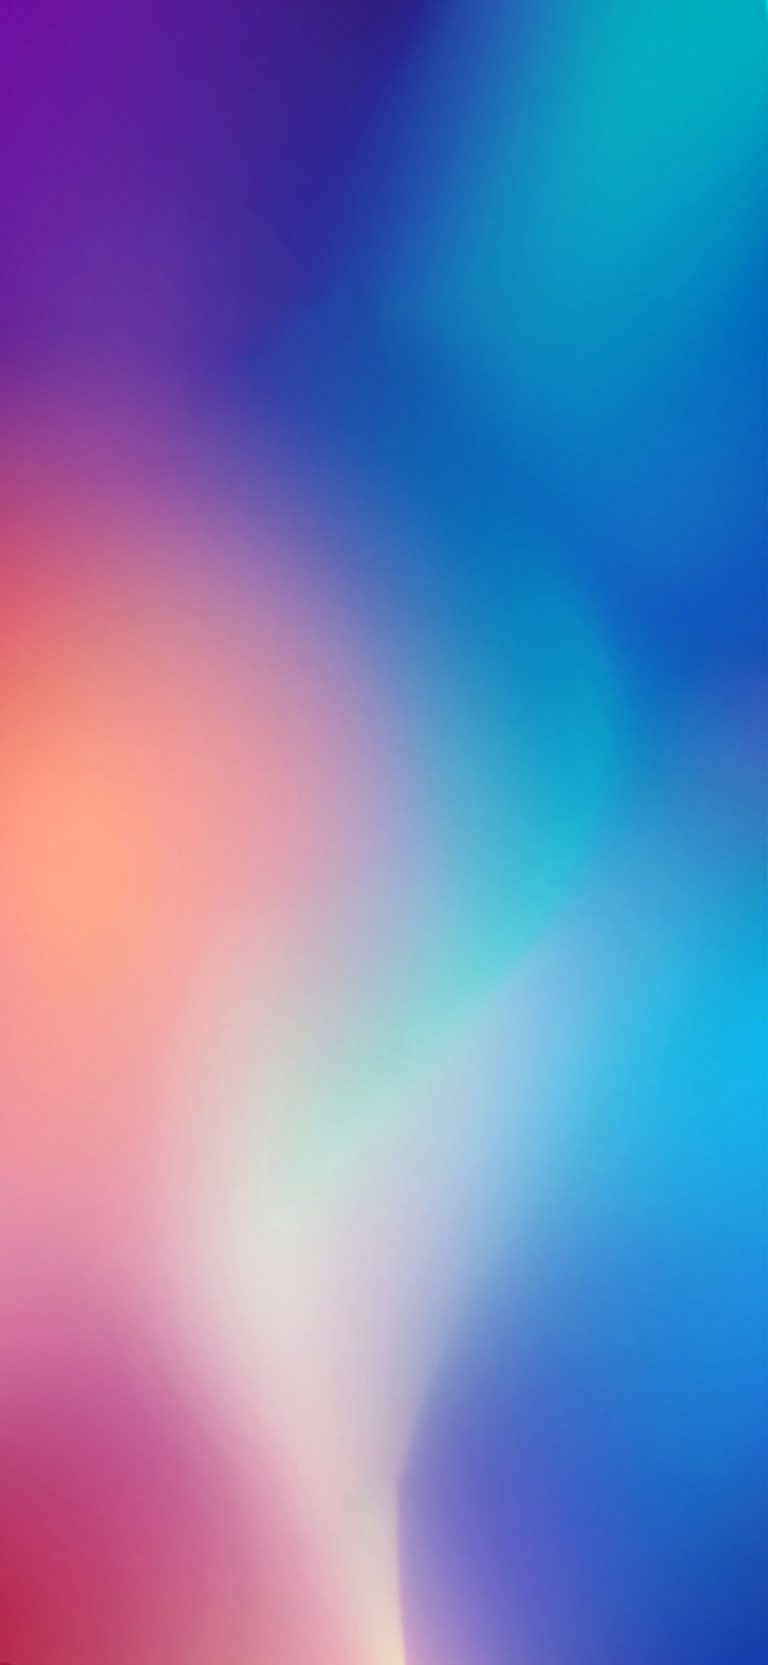 Xiaomi CC9 Stock Wallpaper 02 1080x2342 768x1665